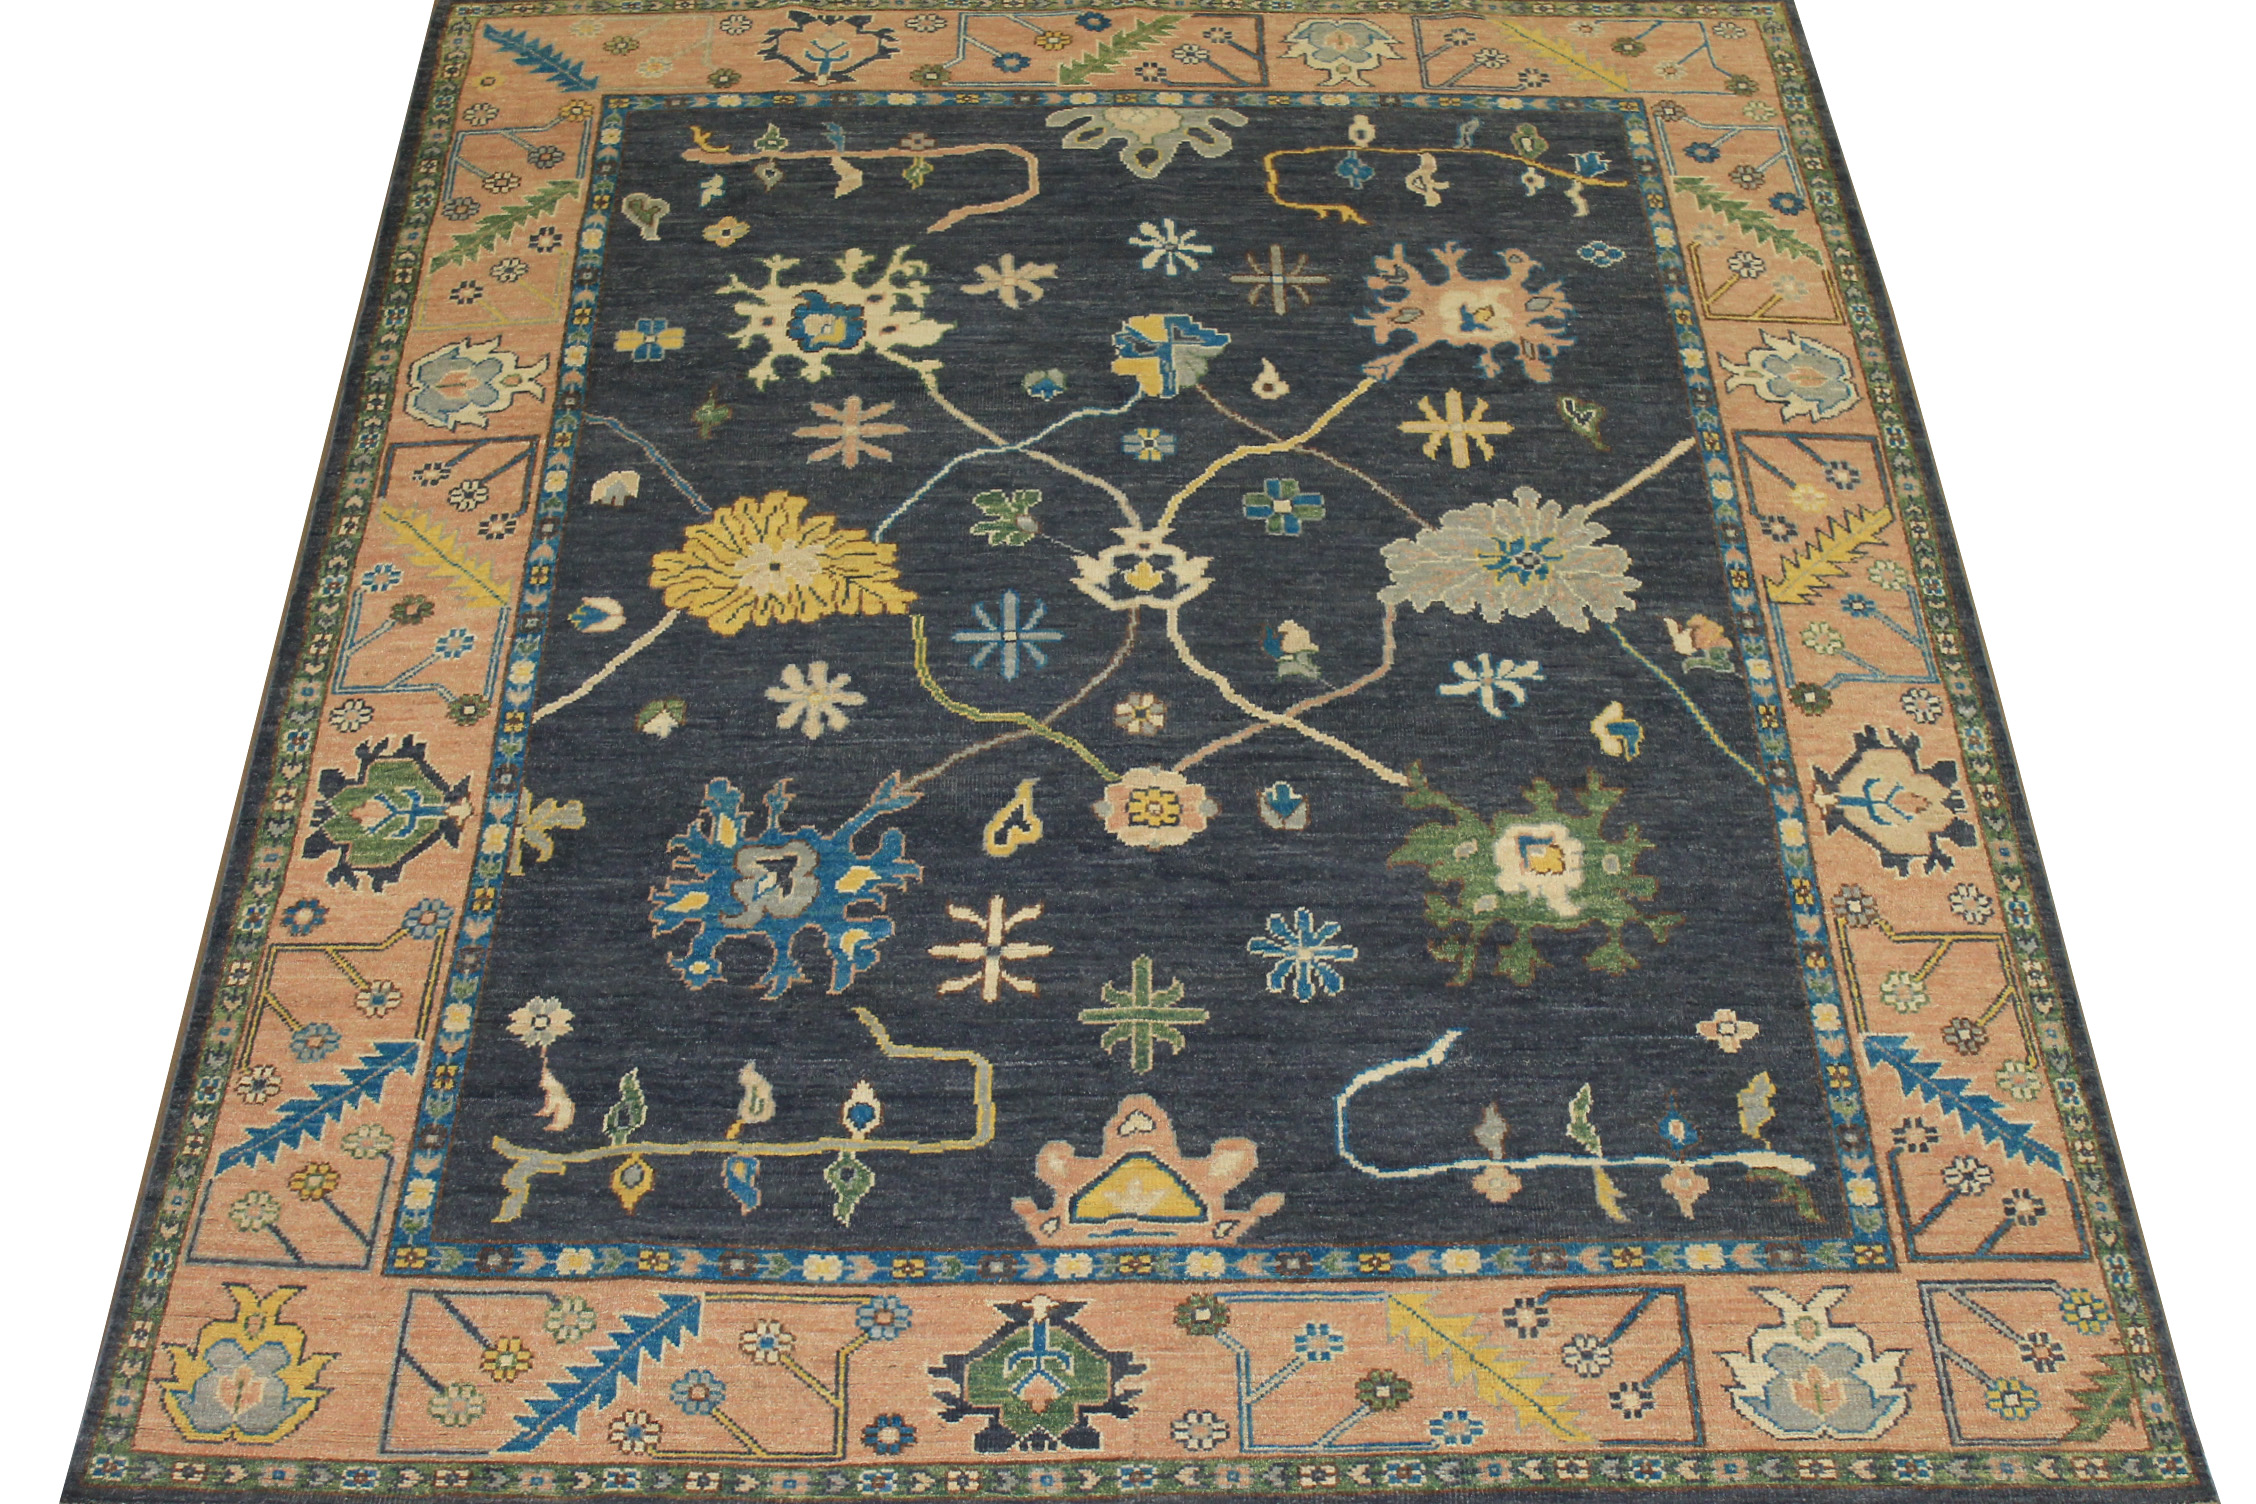 8x10 Oushak Hand Knotted Wool Area Rug - MR024405